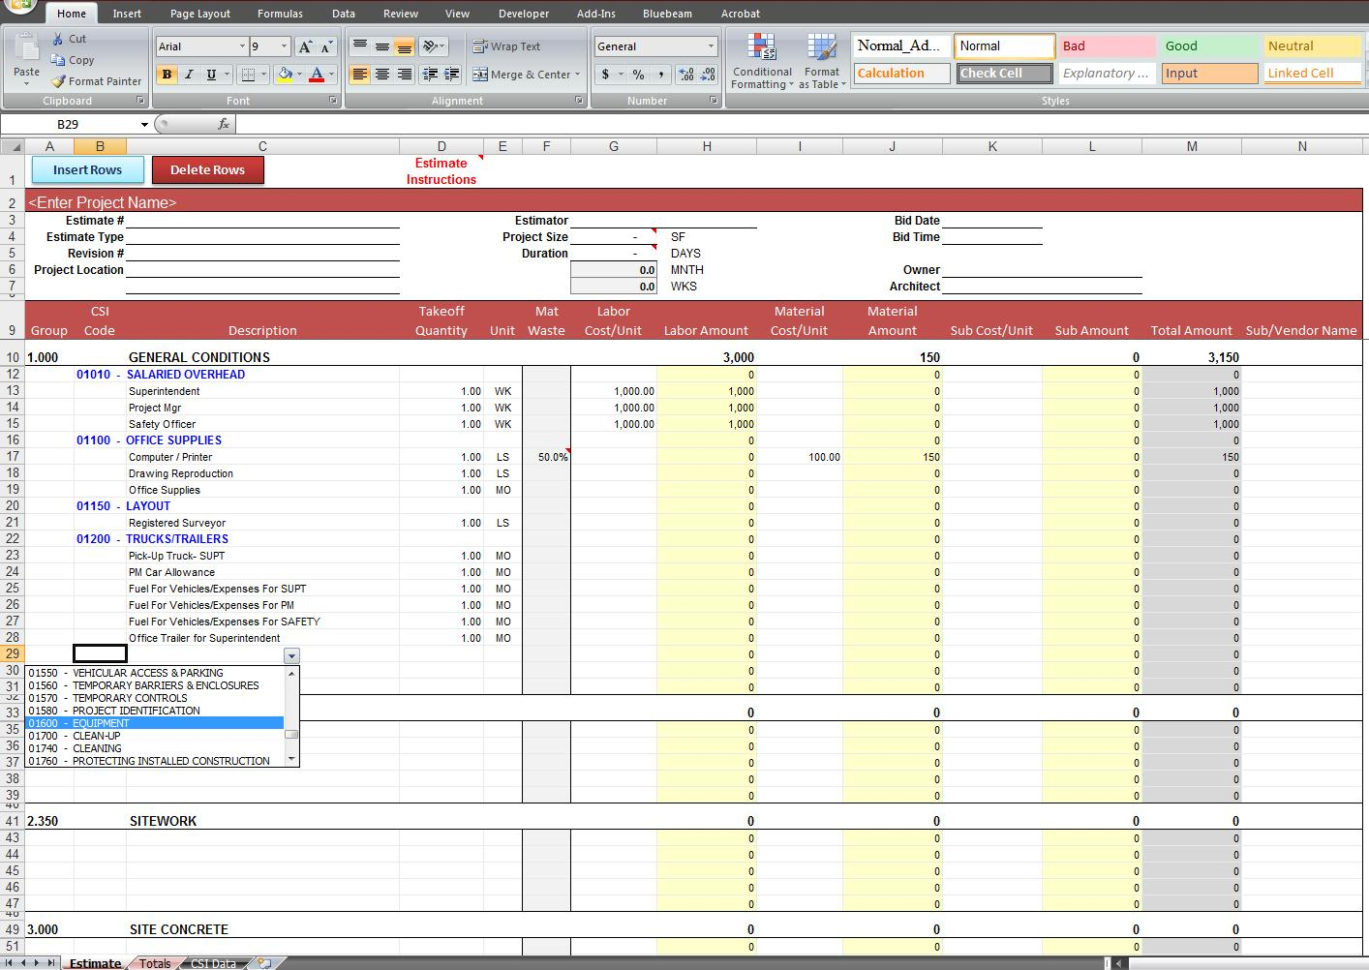 Building Construction Estimate Spreadsheet Excel Download On How To Intended For Building Construction Estimate Spreadsheet Excel Download